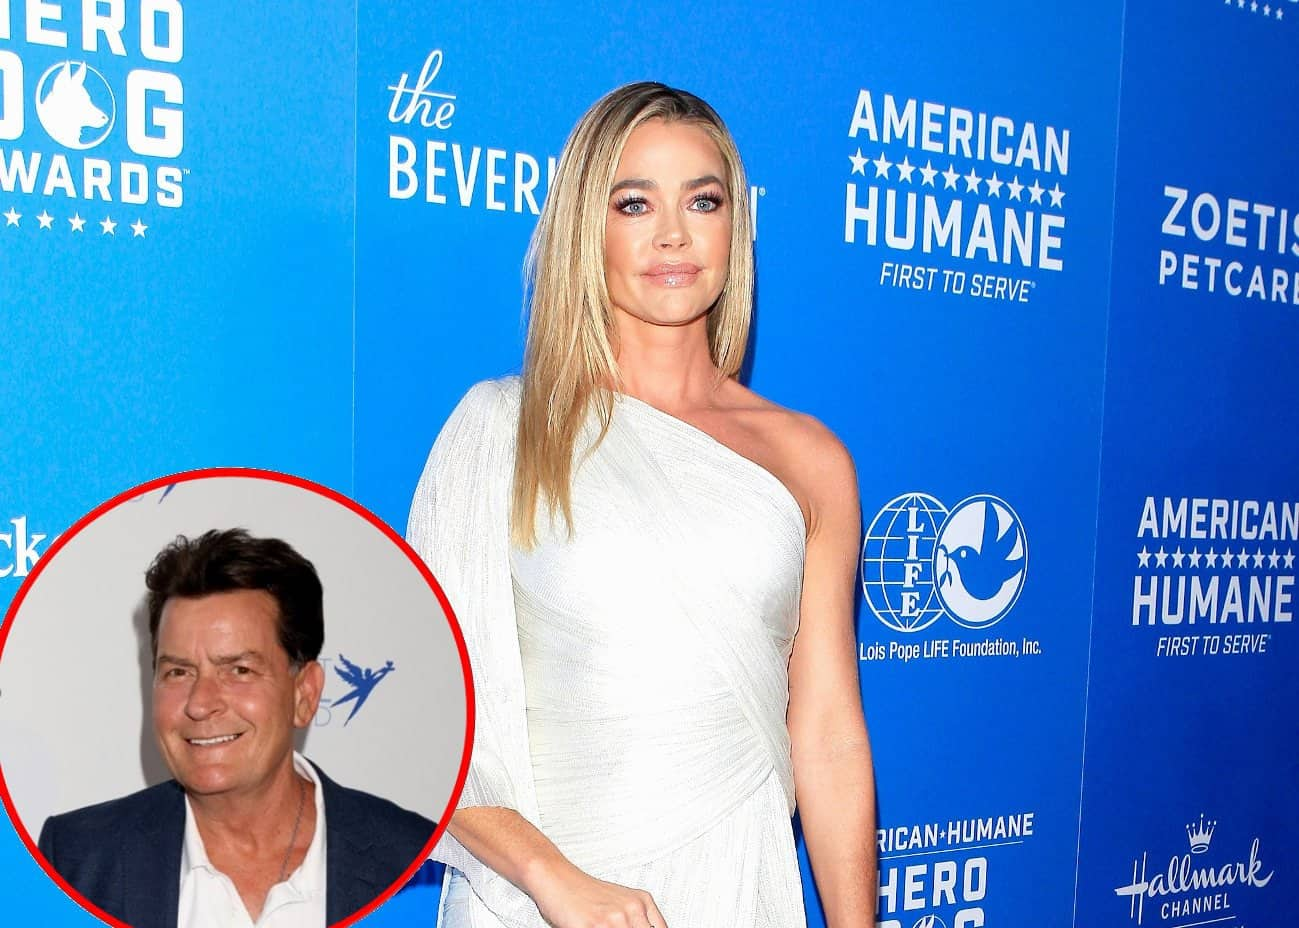 RHOBH Star Denise Richards Sues Ex Charlie Sheen for $450,000 in Back Child Support, Reveals Her Income and Expenses in Court Documents